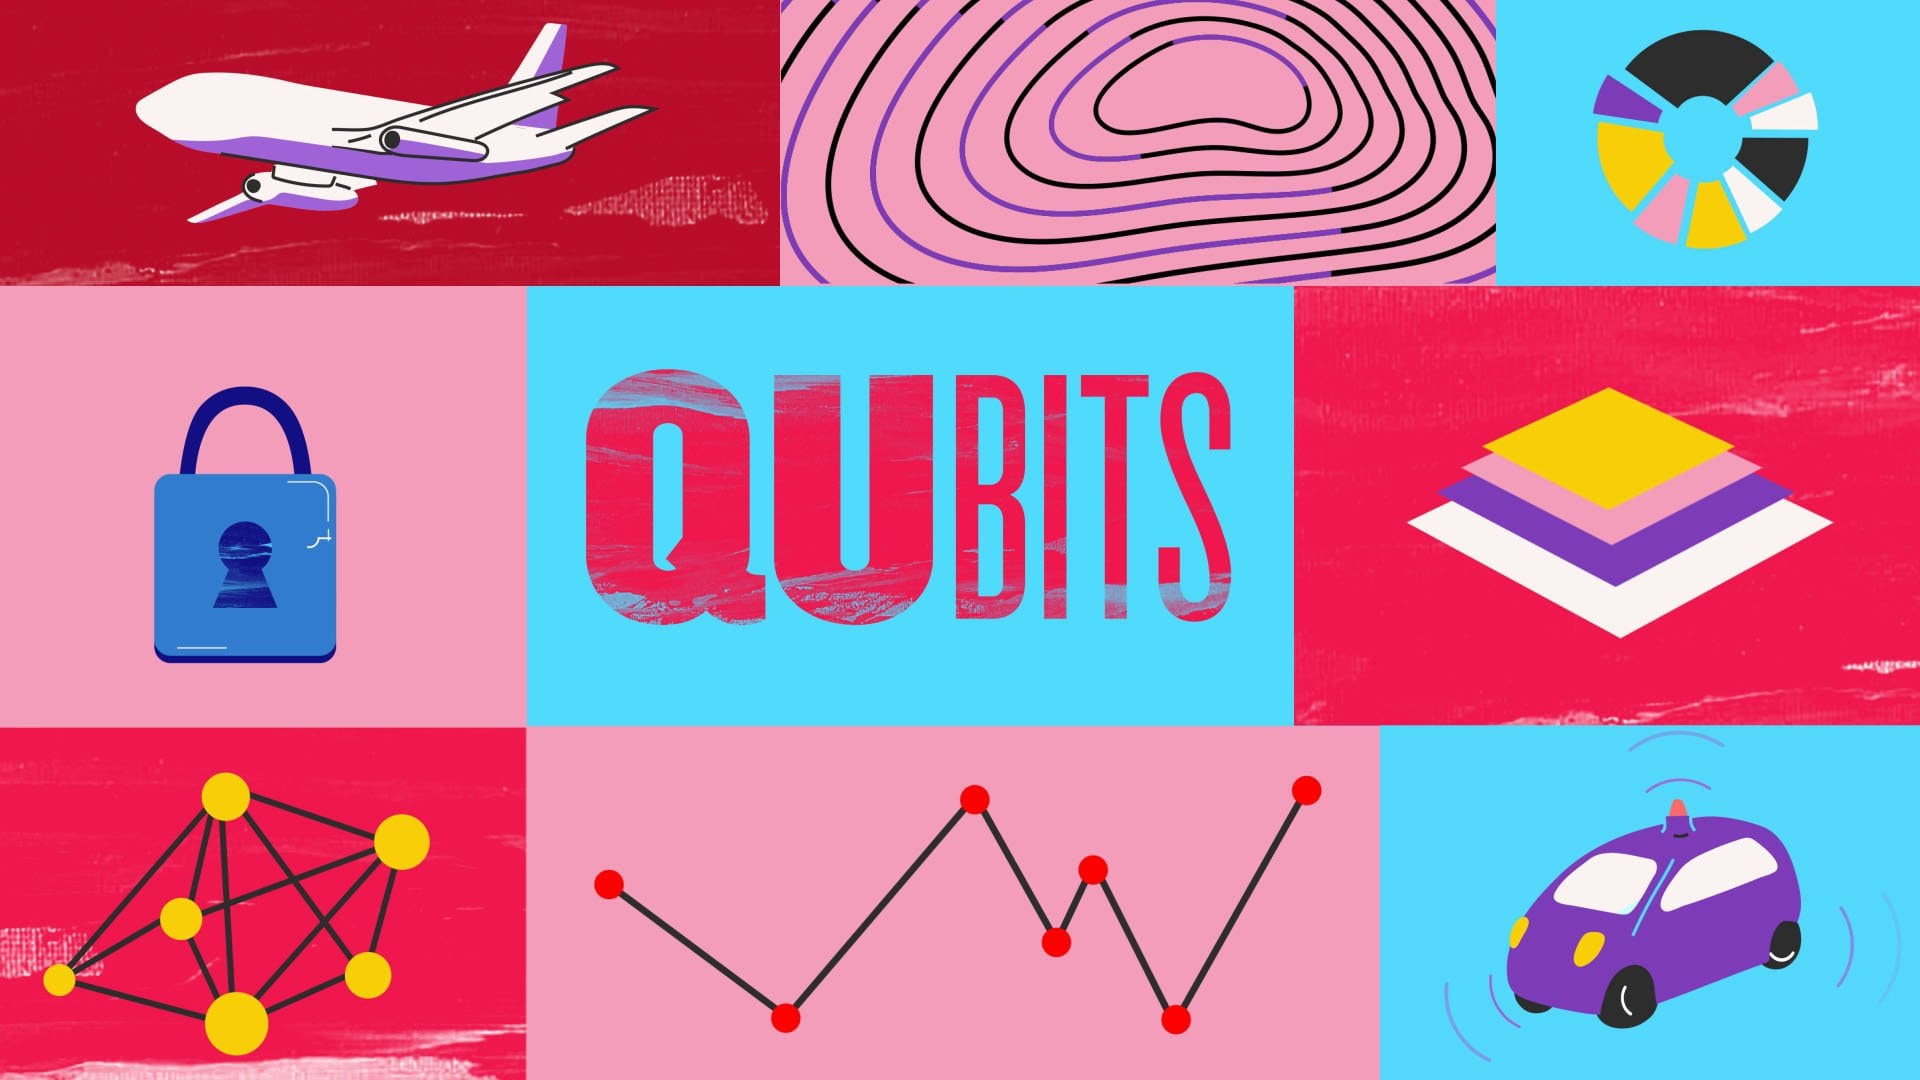 thumbnail of the Quantum animation, talking about qubits